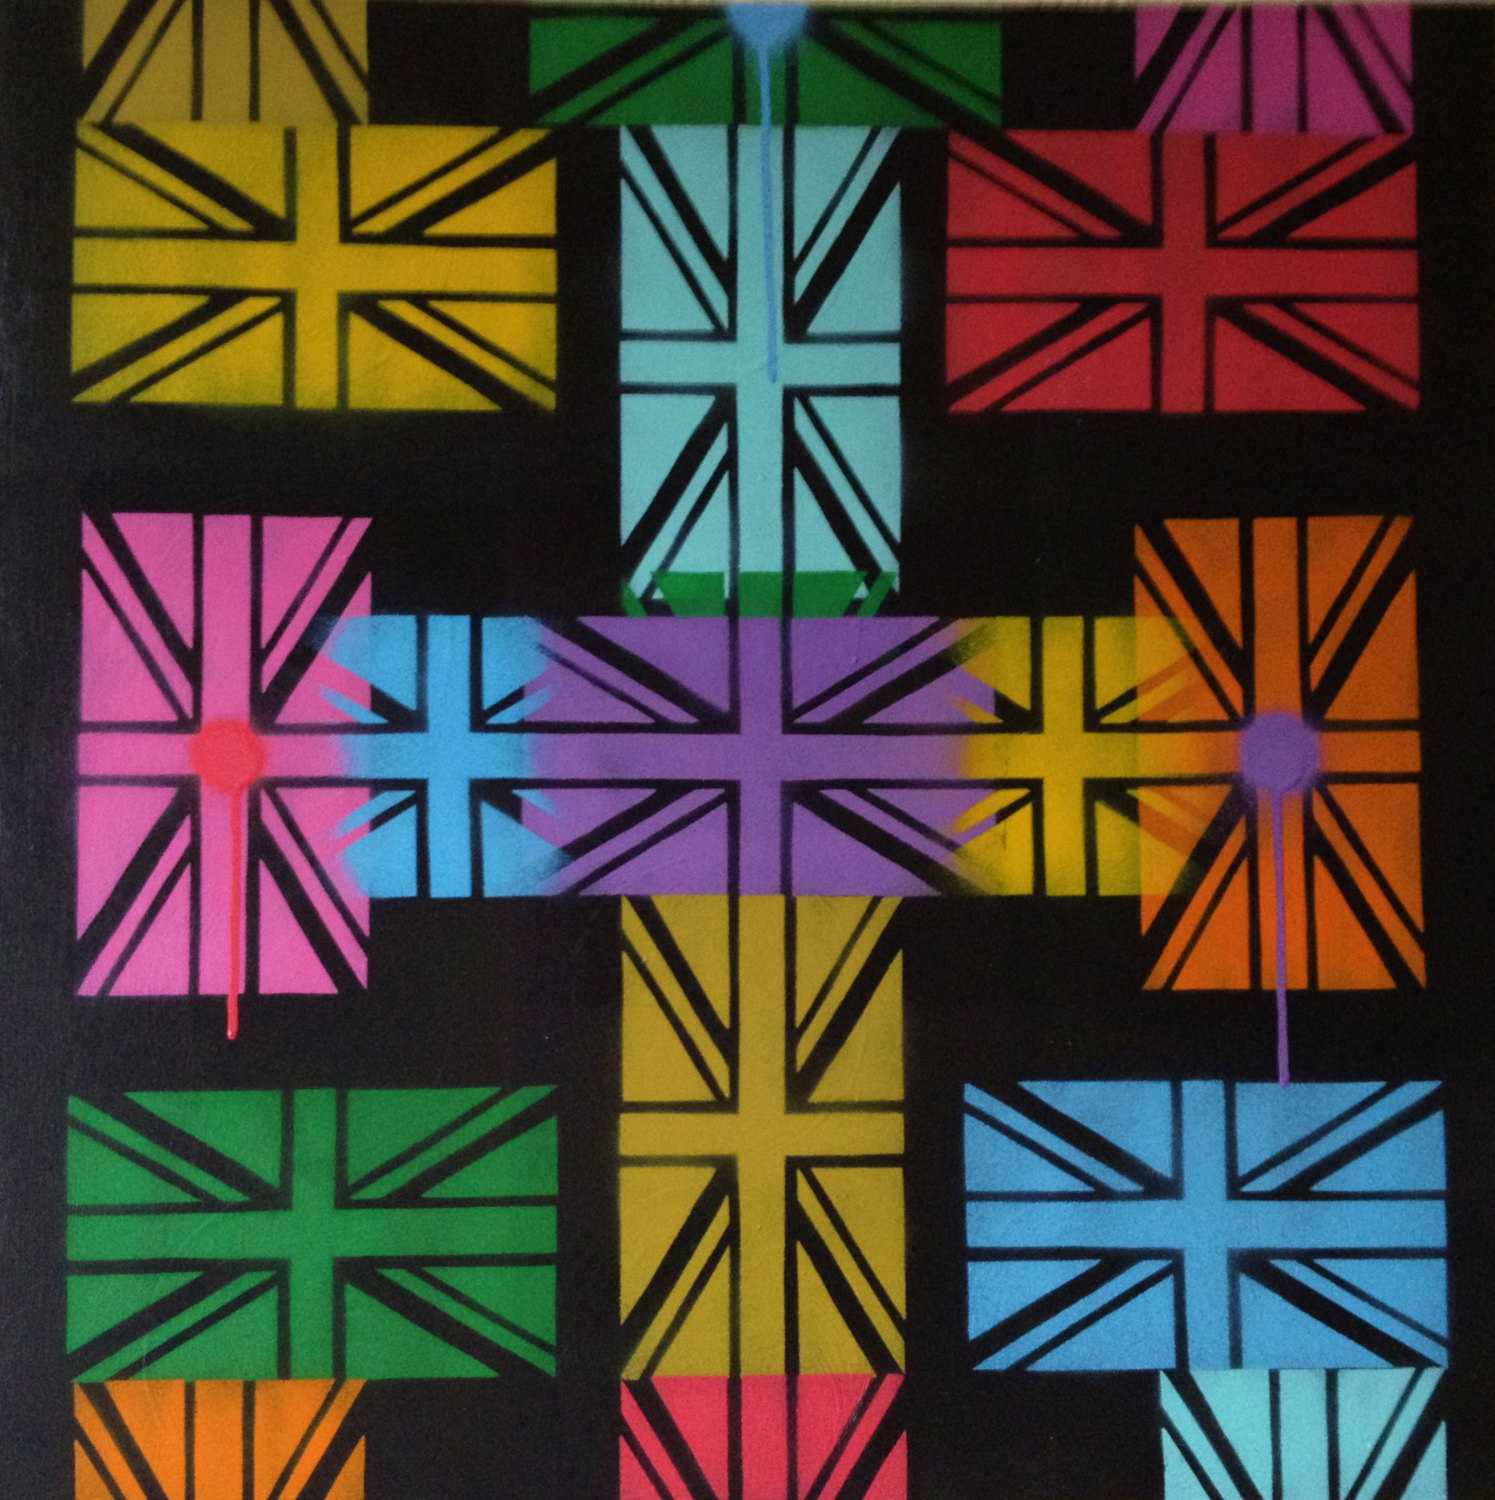 Bright Colours Painting Painting Of Cross Made With Union Jack Flags Britain Bright Colours Stencils Spray Paints United Kingdom Abstract Urban Pop Crucifix Canvas From